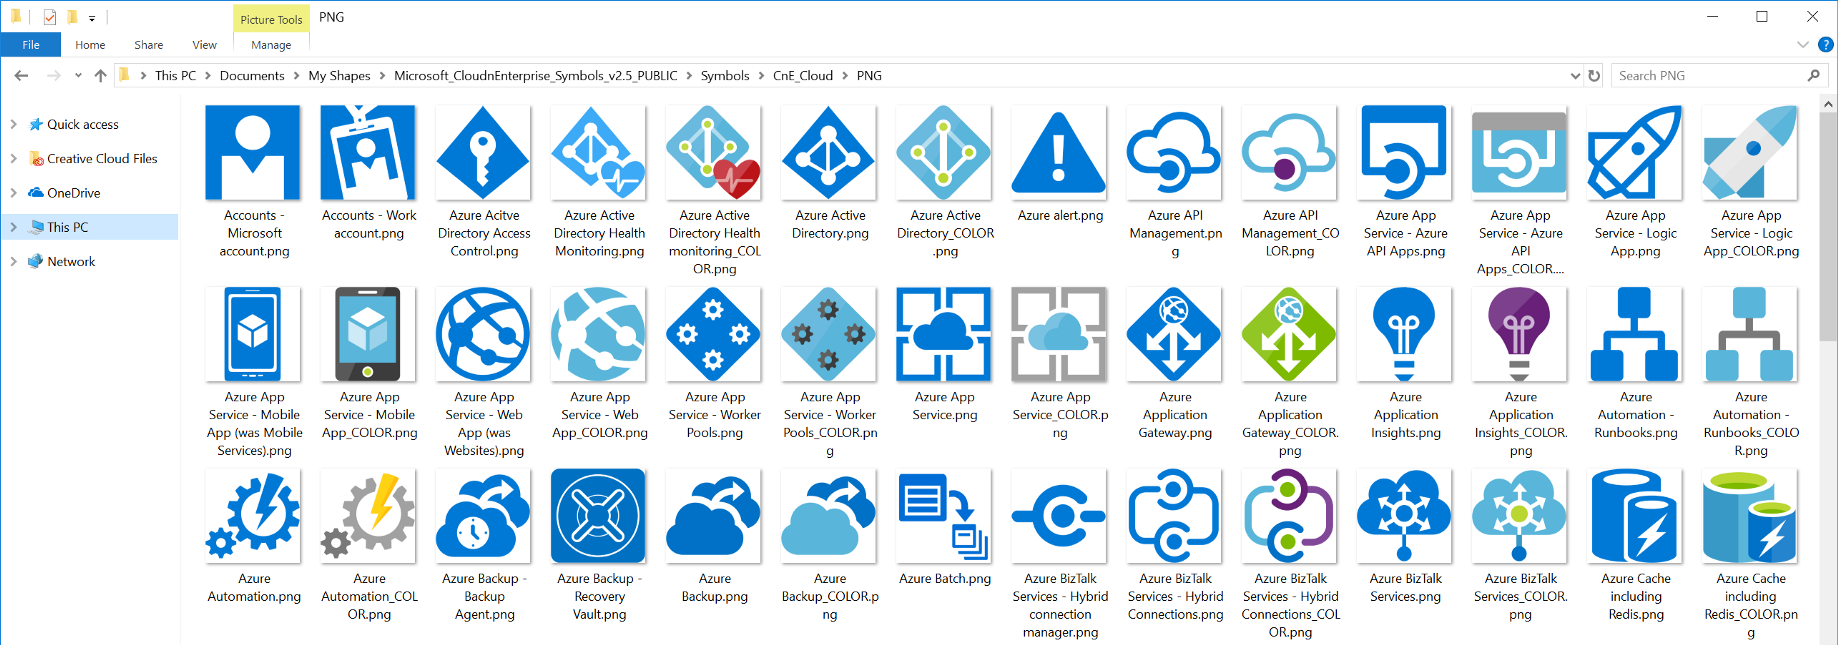 Microsoft Azure Symbol / Icon Set Download — Visio stencil, PNG, and SVG